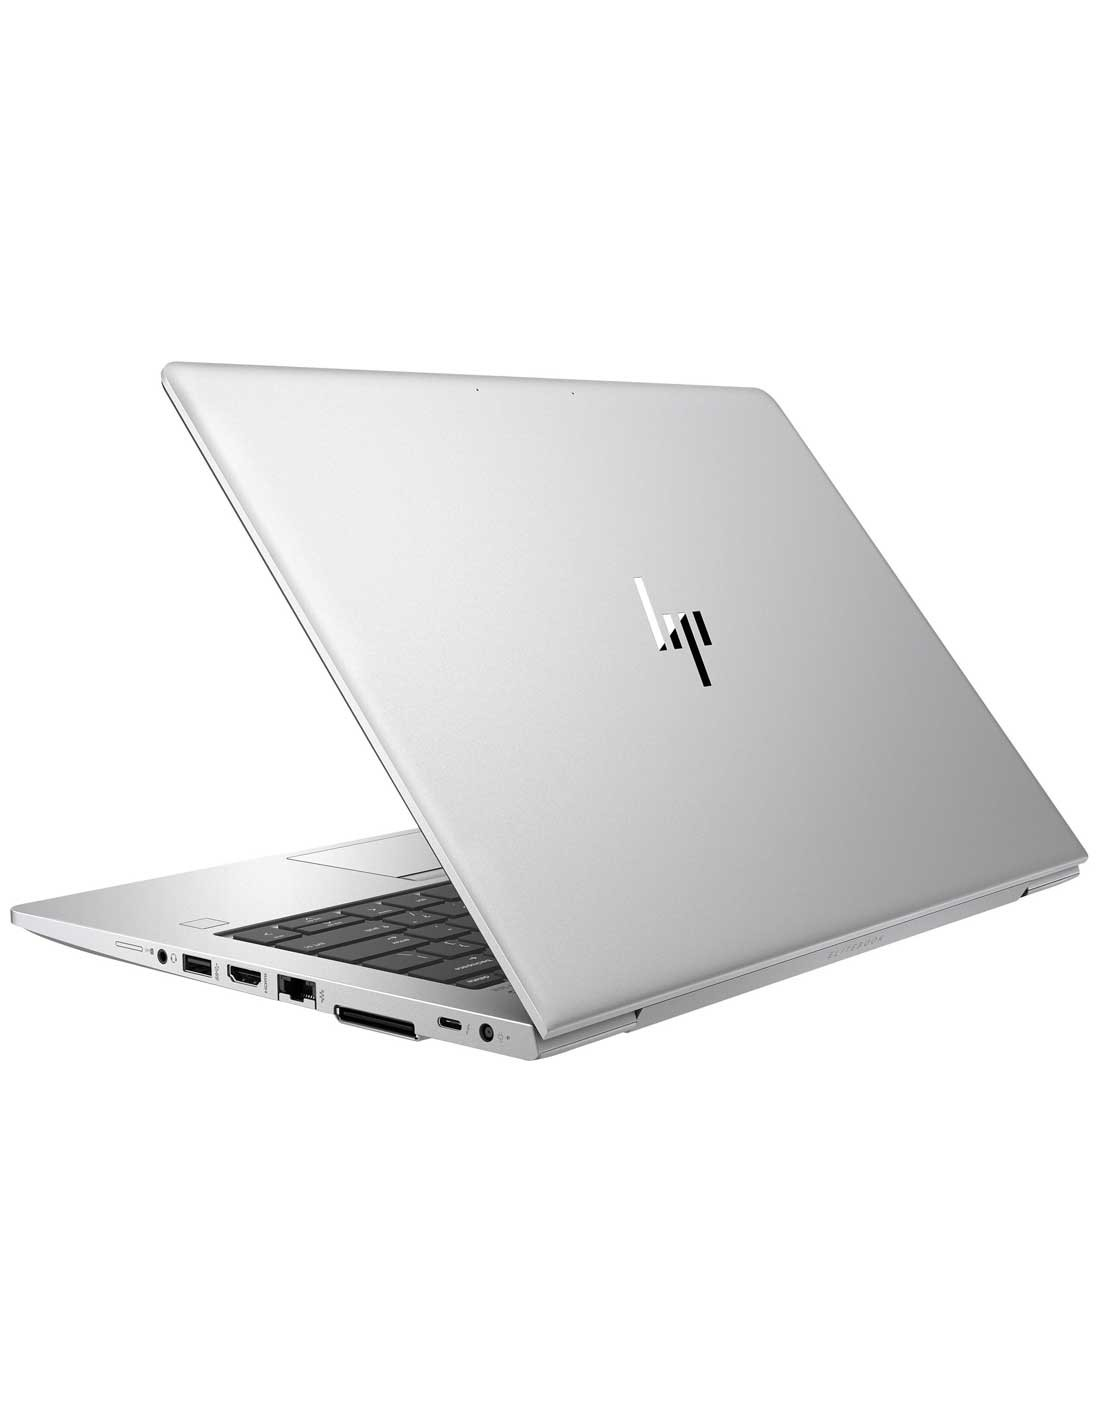 HP EliteBook 840 G5 Notebook 32GB images and photos